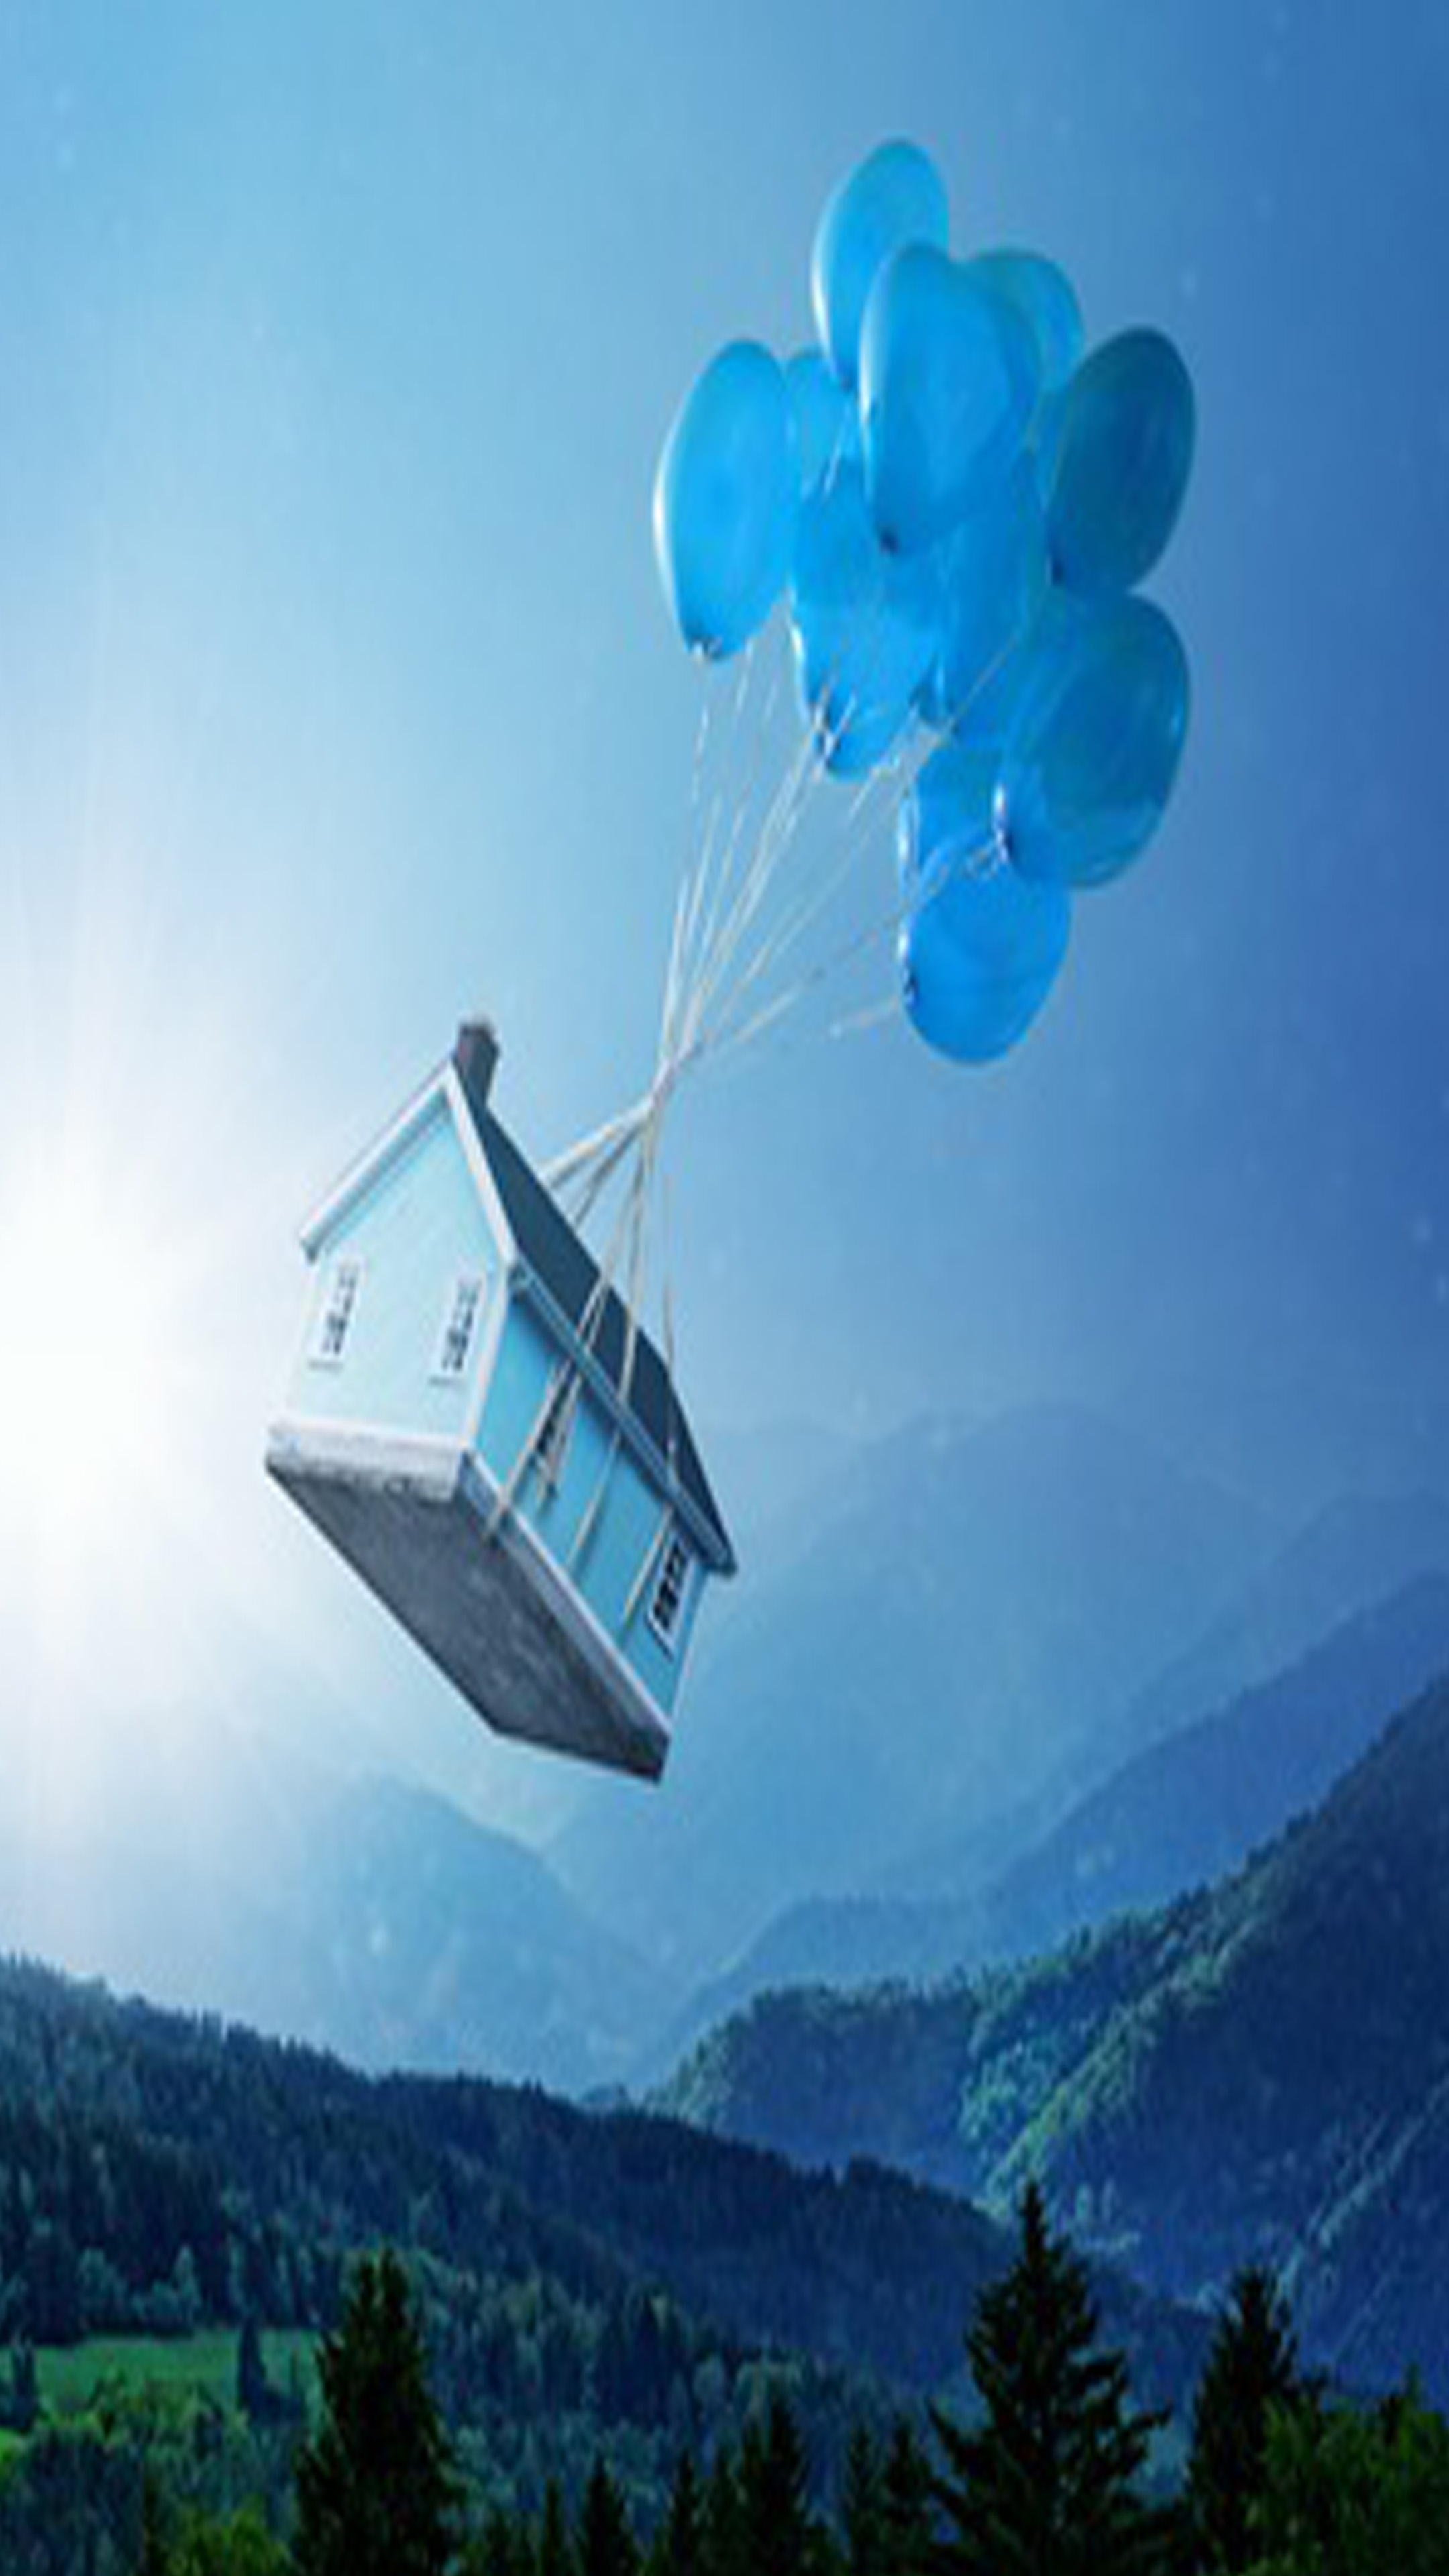 balloon_floating_house_computers_mobile_wallpaper.jpg